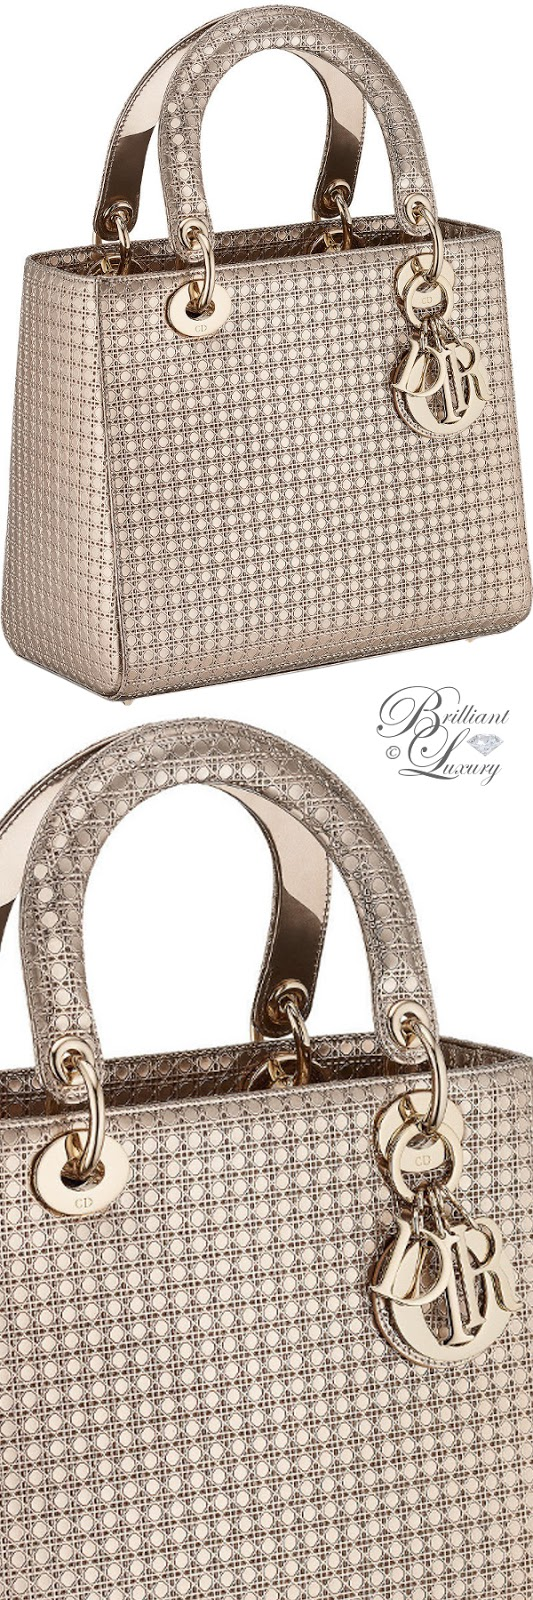 Brilliant Luxury ♦ Lady Dior bag in champagne metallic calfskin with micro-cannage motif